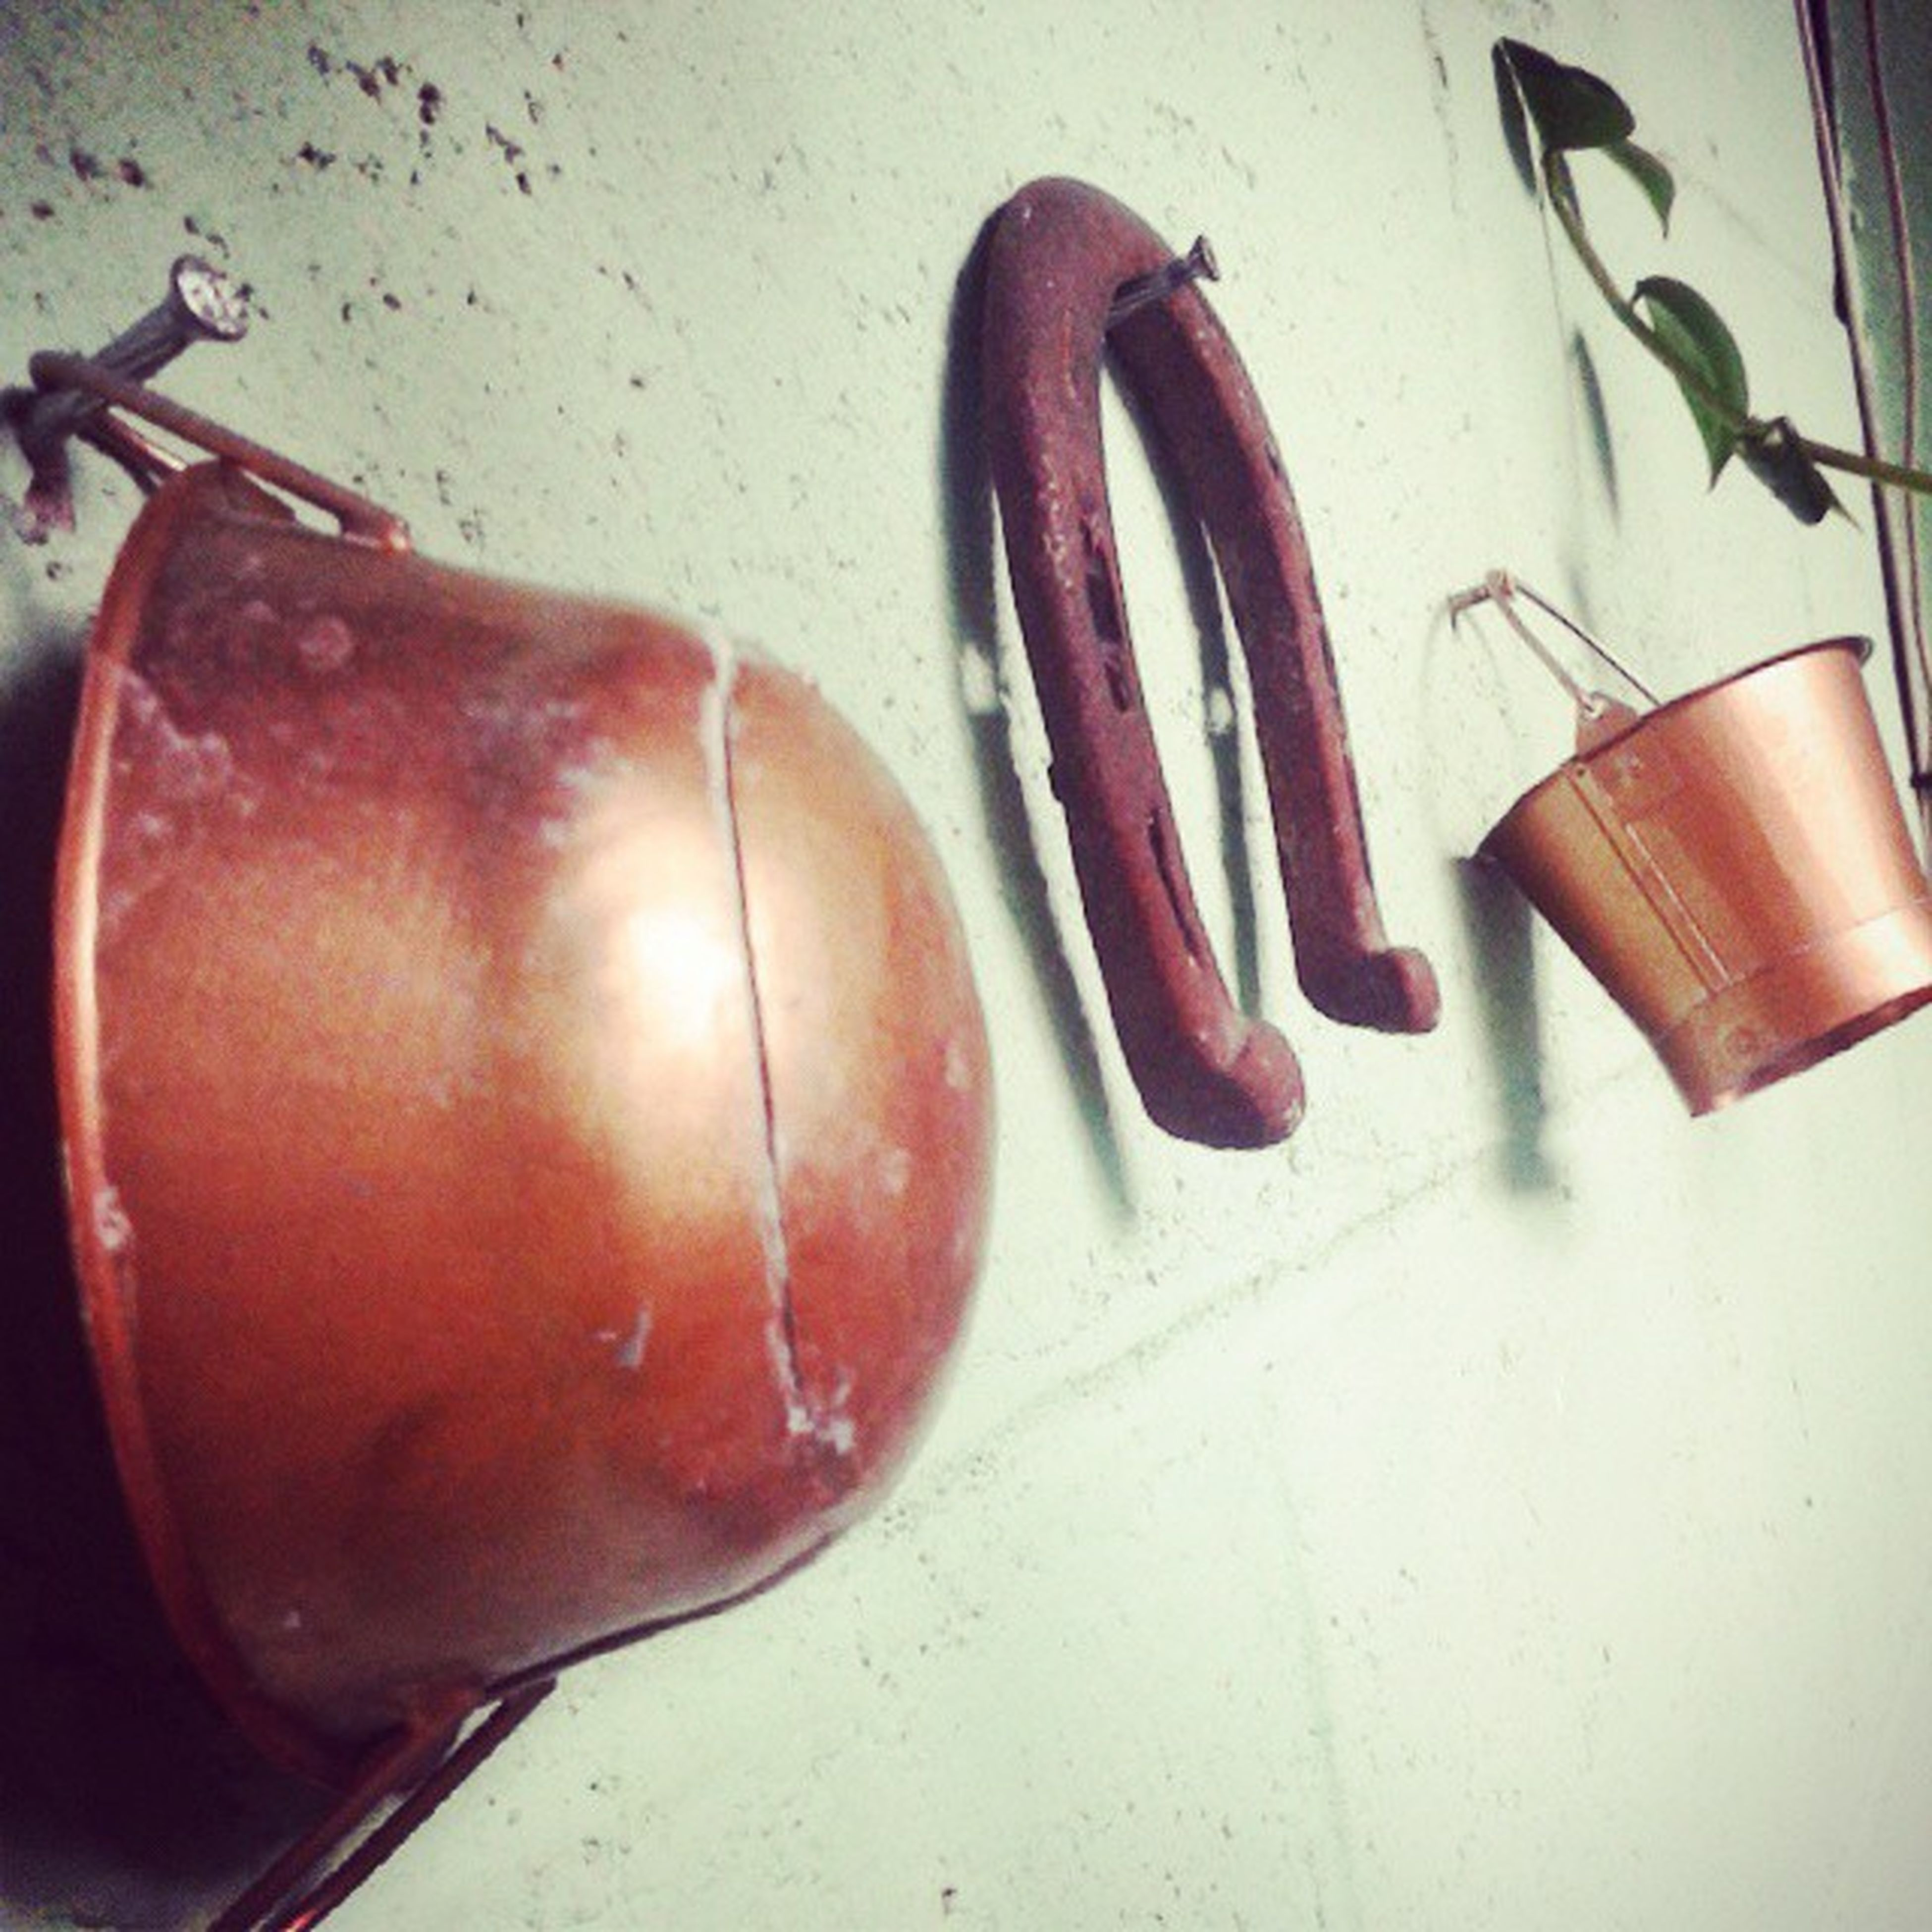 indoors, still life, red, table, close-up, high angle view, wall - building feature, no people, food and drink, metal, shadow, wall, day, wood - material, potted plant, single object, home interior, old, container, sunlight